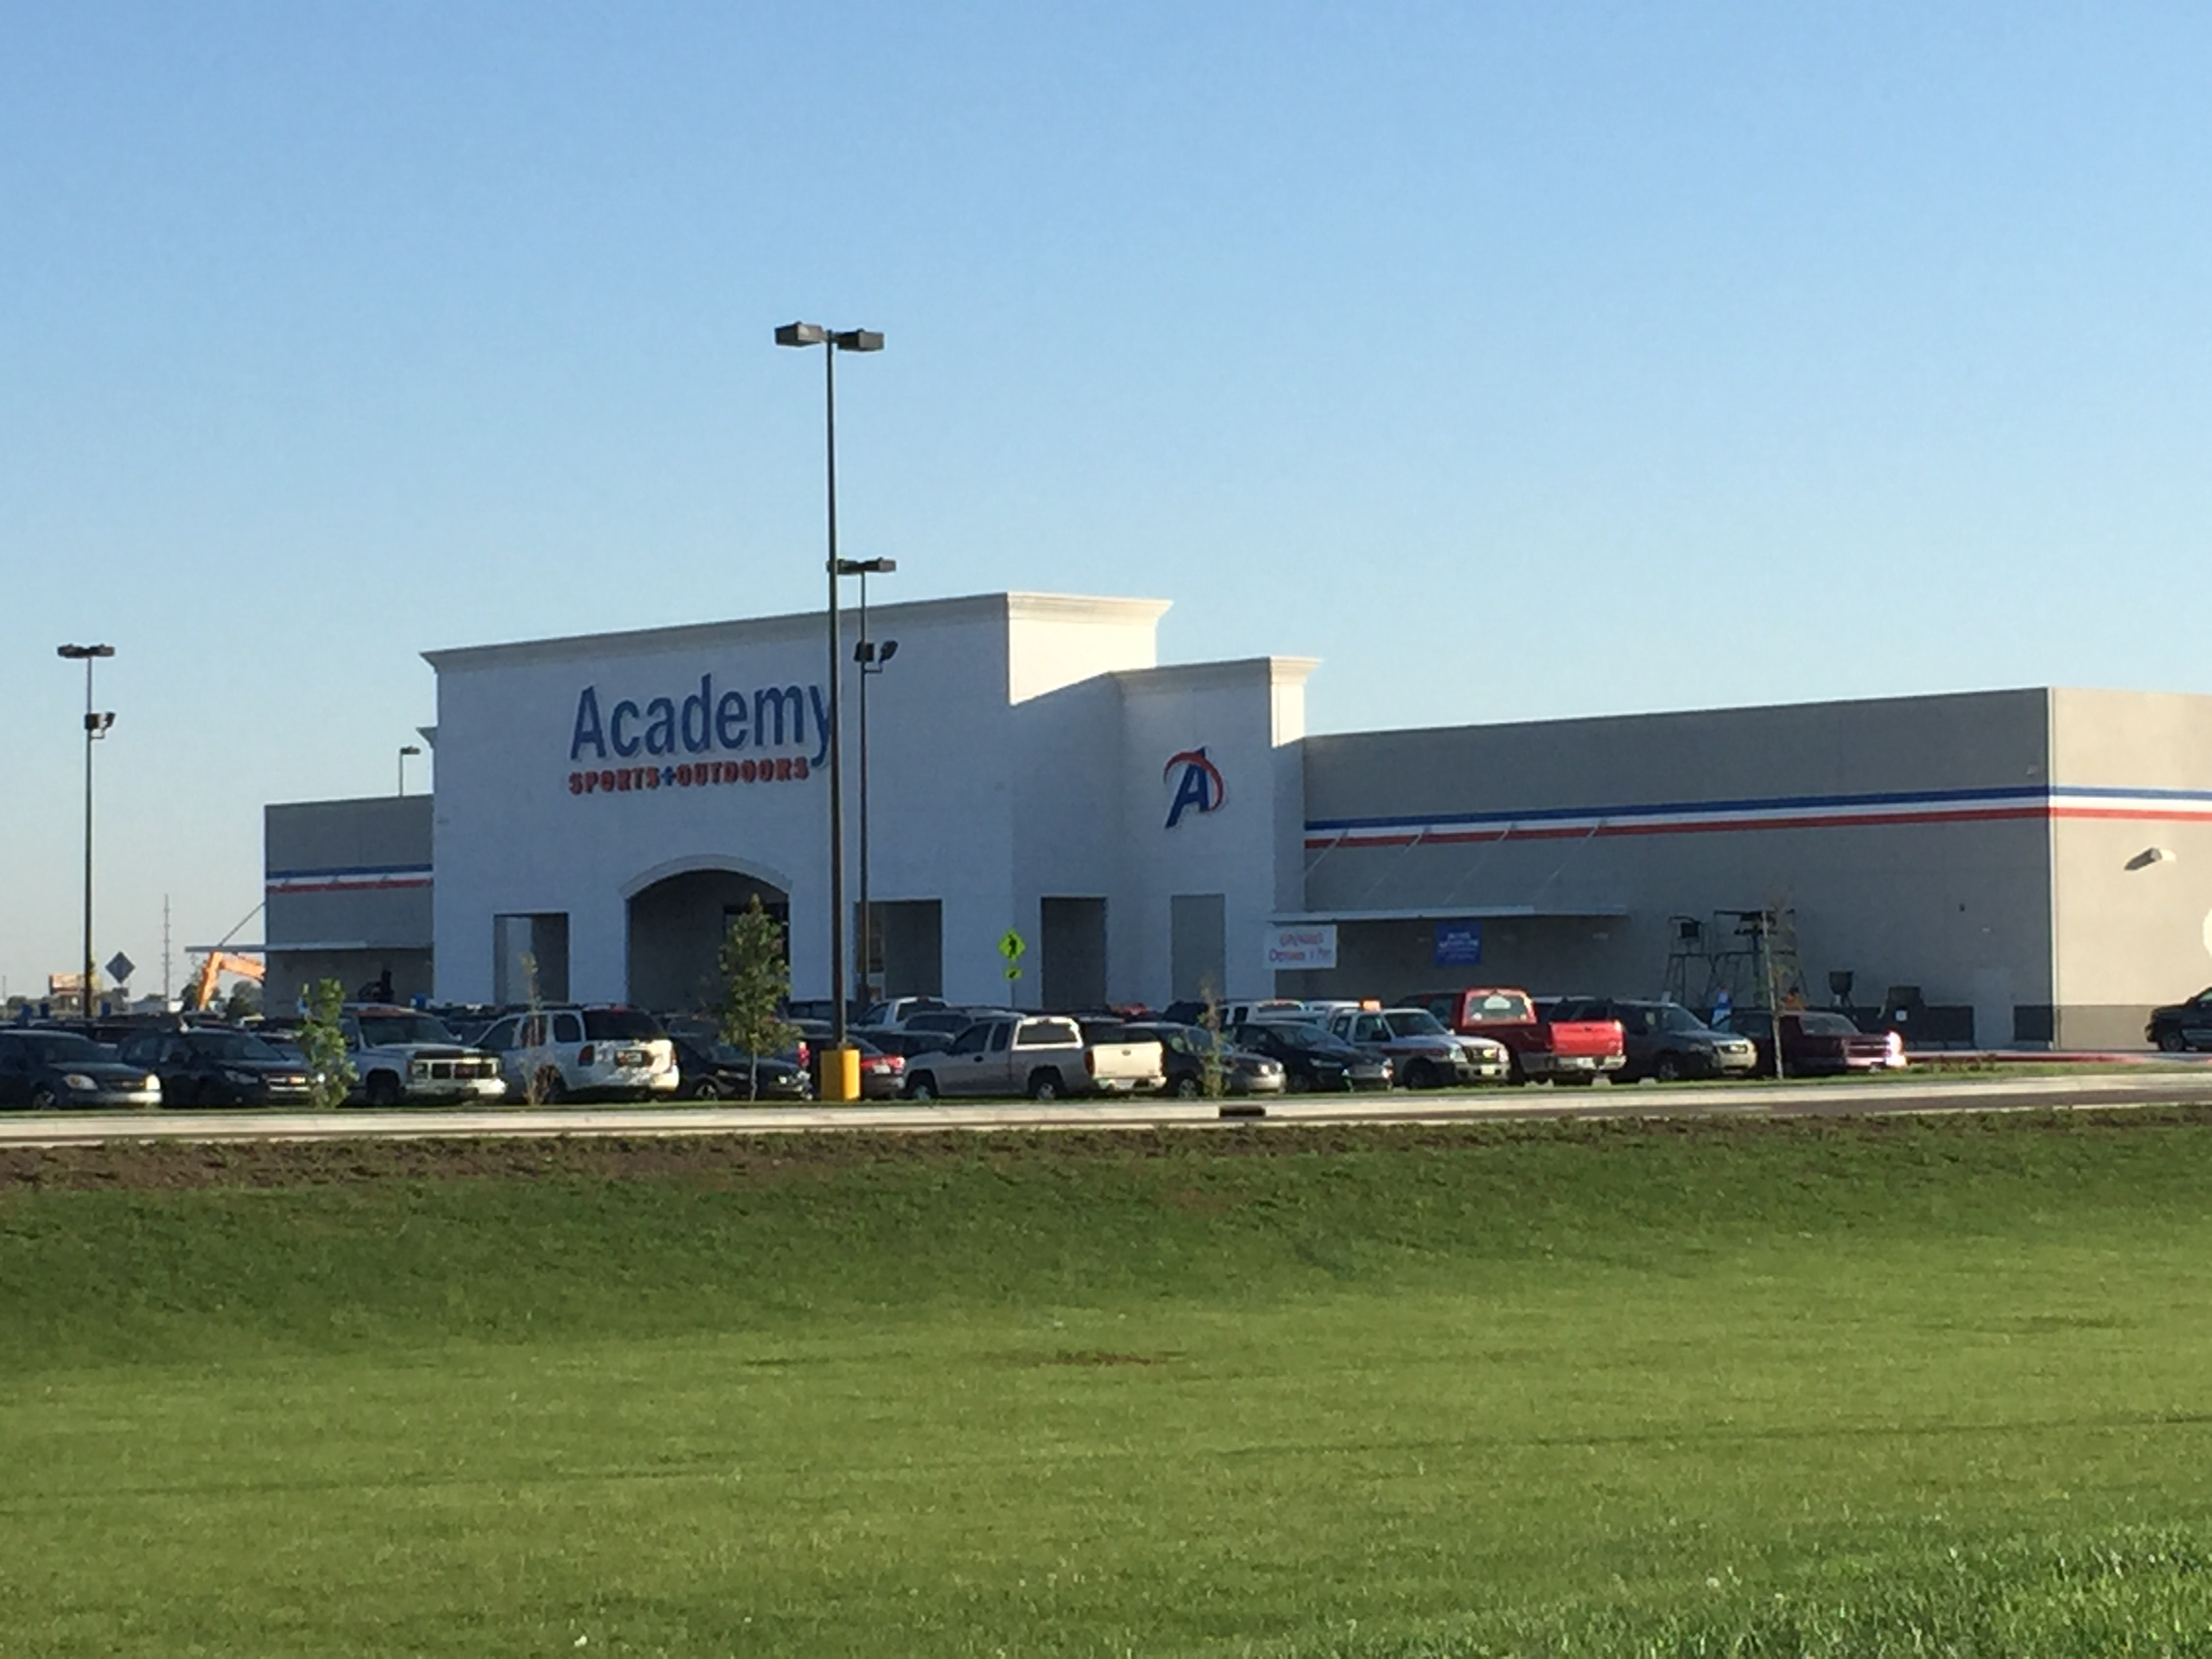 academy sports outdoors promenade evansville open october andy martin published